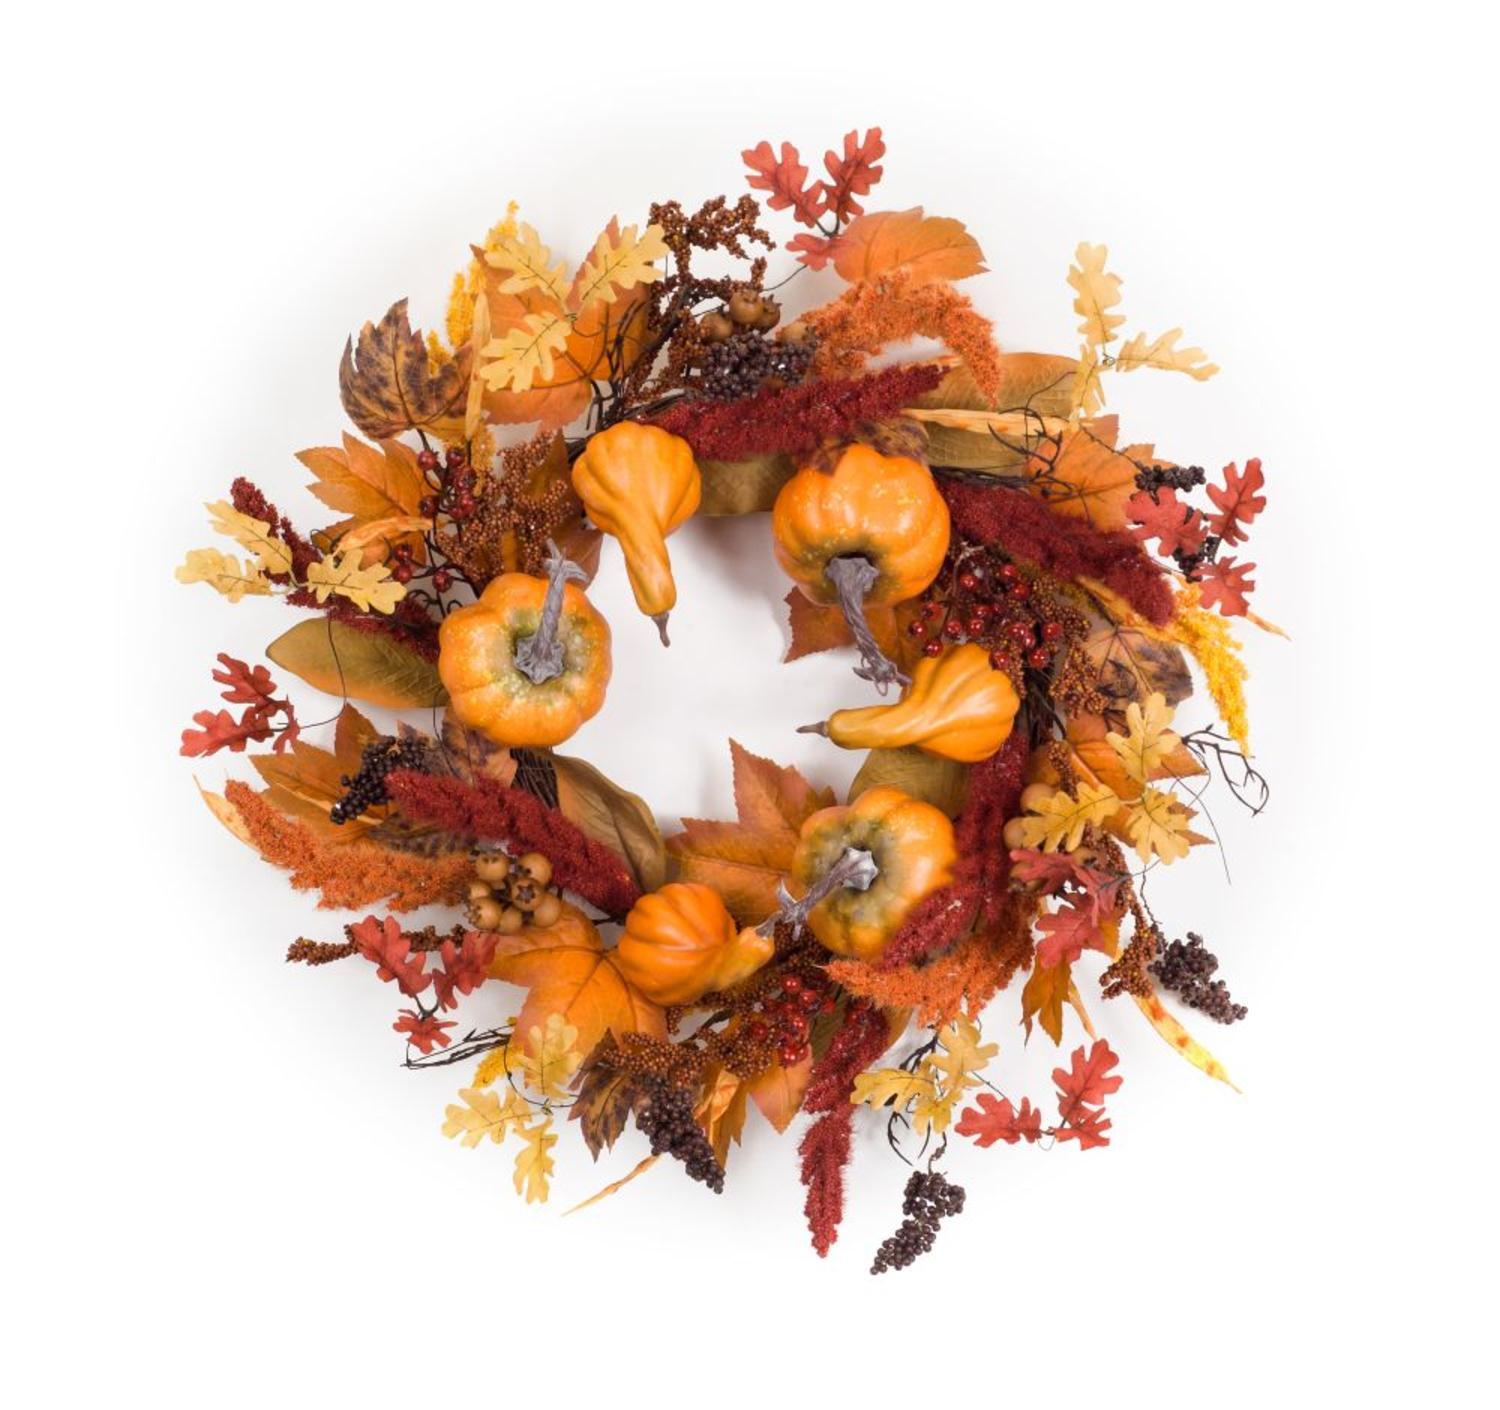 Orange and Red Fall Inspired Pumpkins, Gourds and Foxtail Wreaths - 27-Inch, Unlit